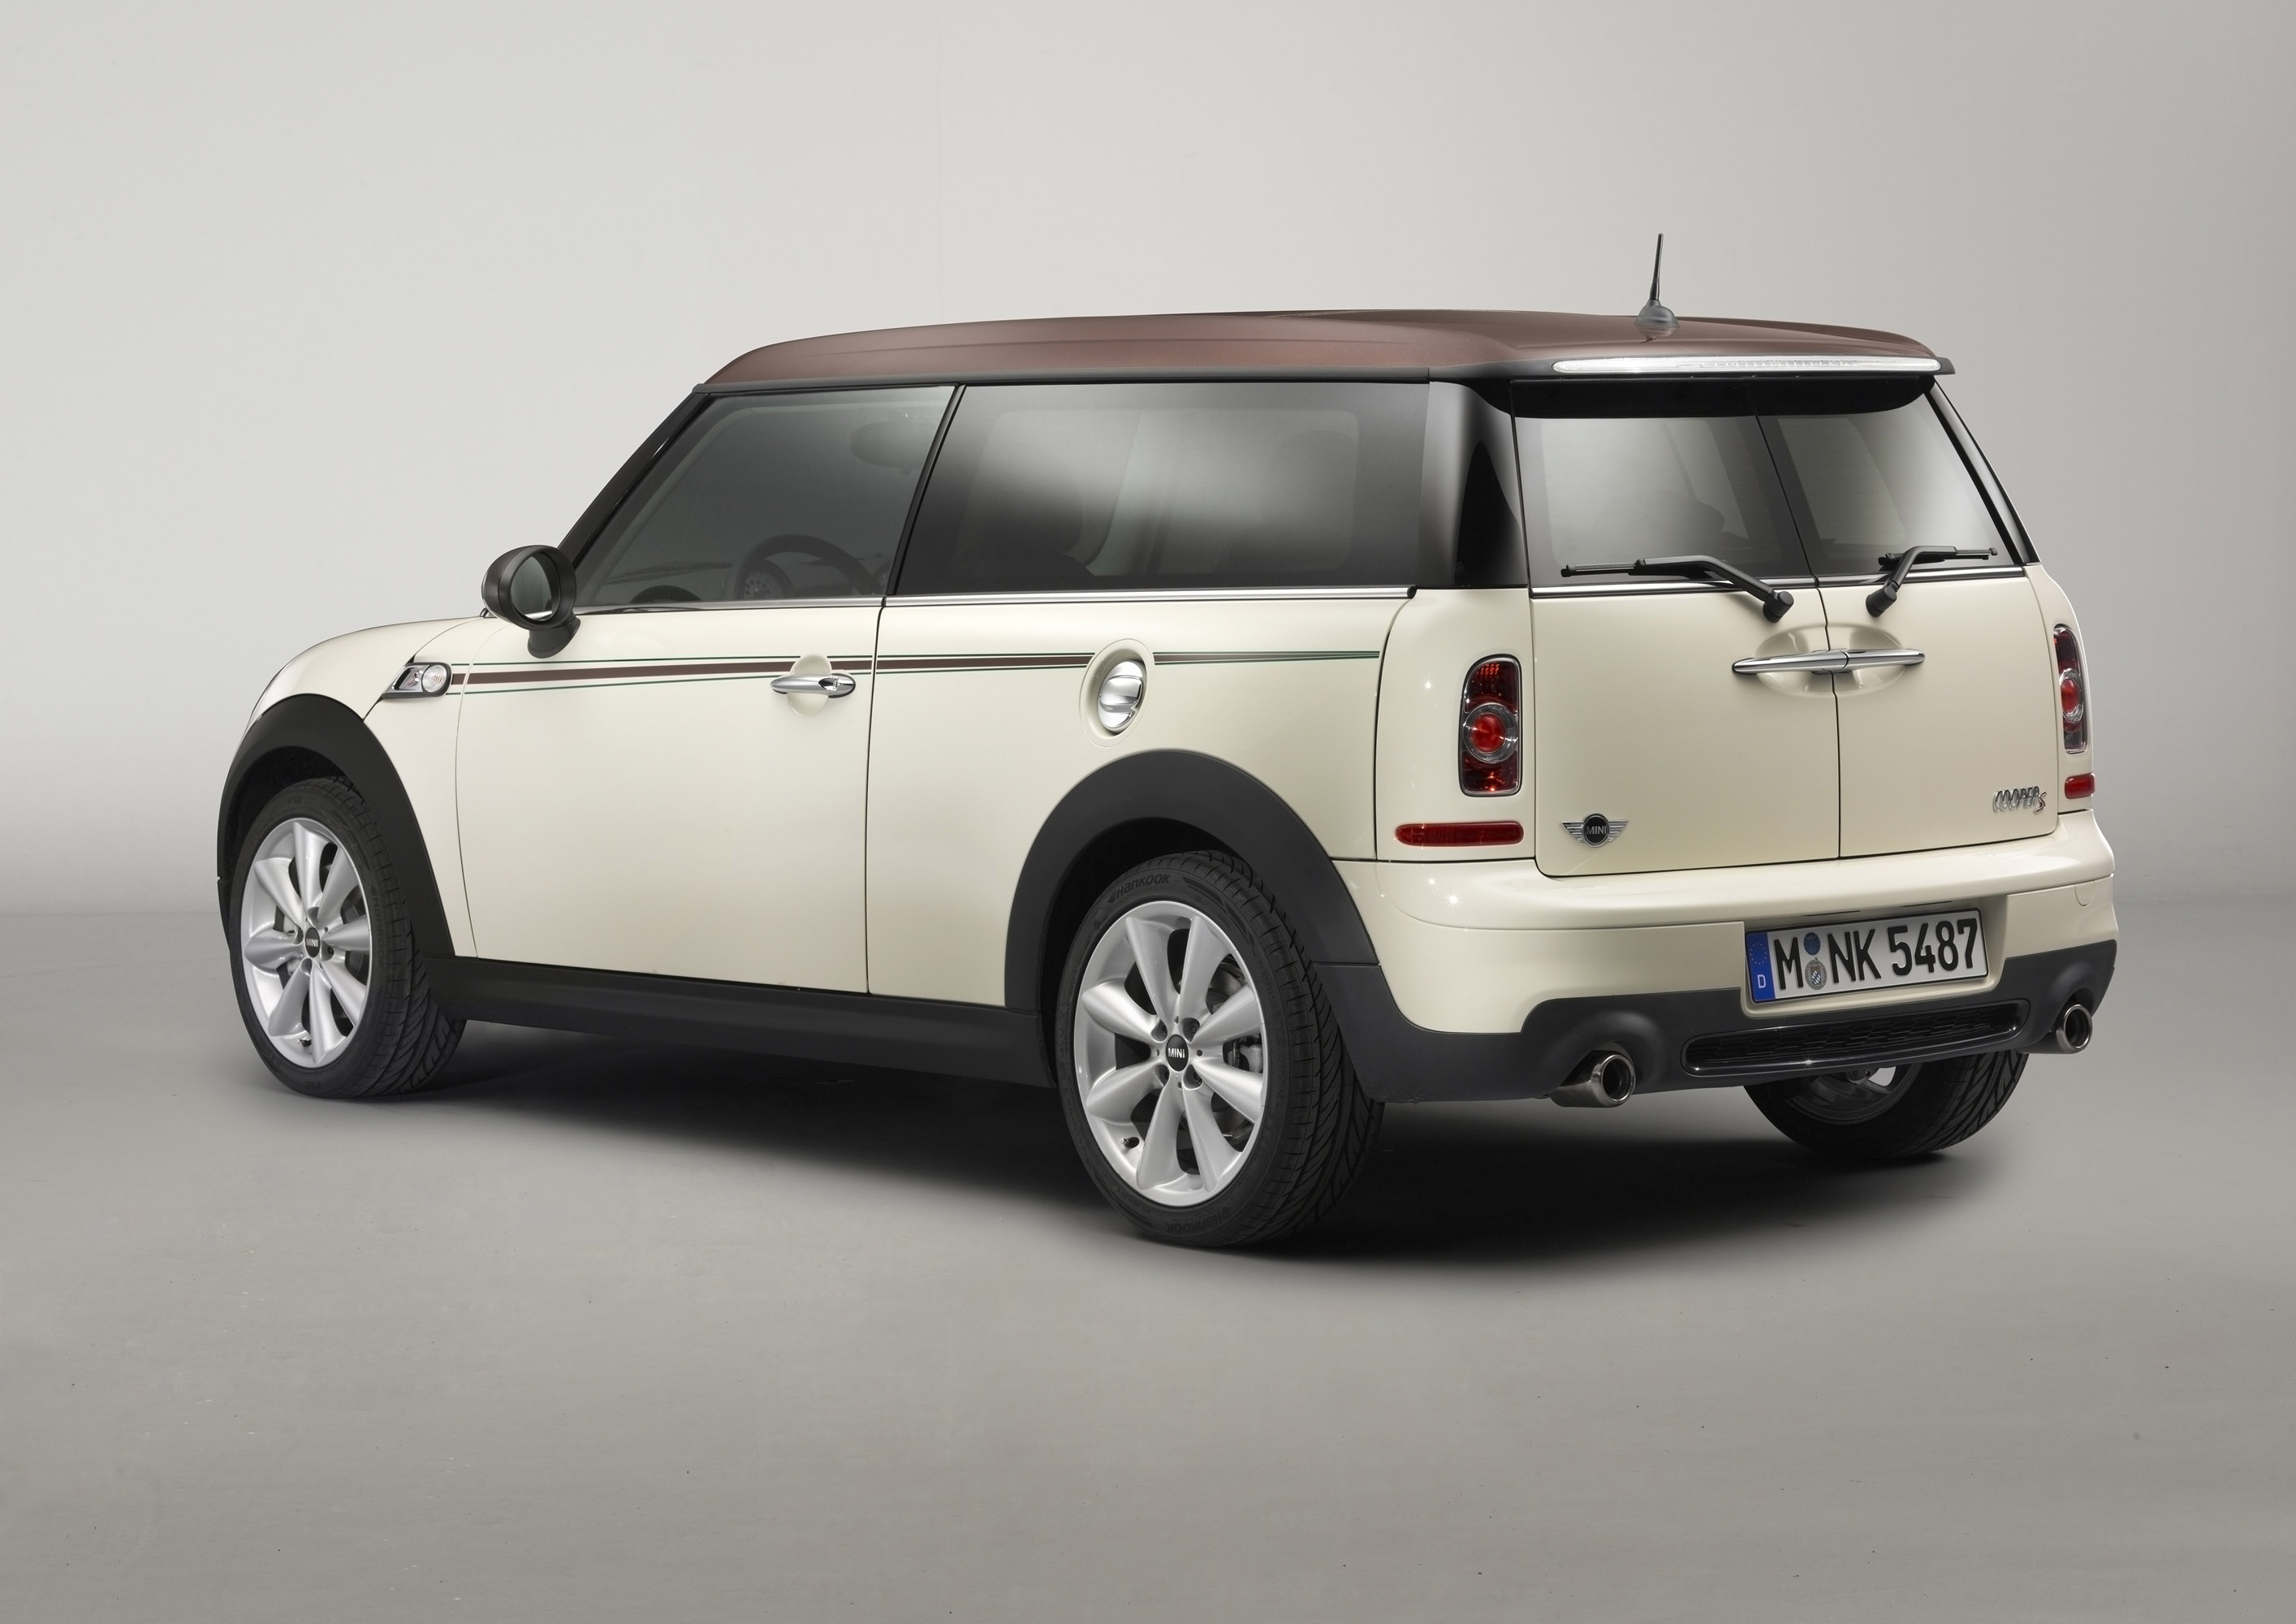 2012 Mini Clubman Hyde Park And Mini Green Park Offer